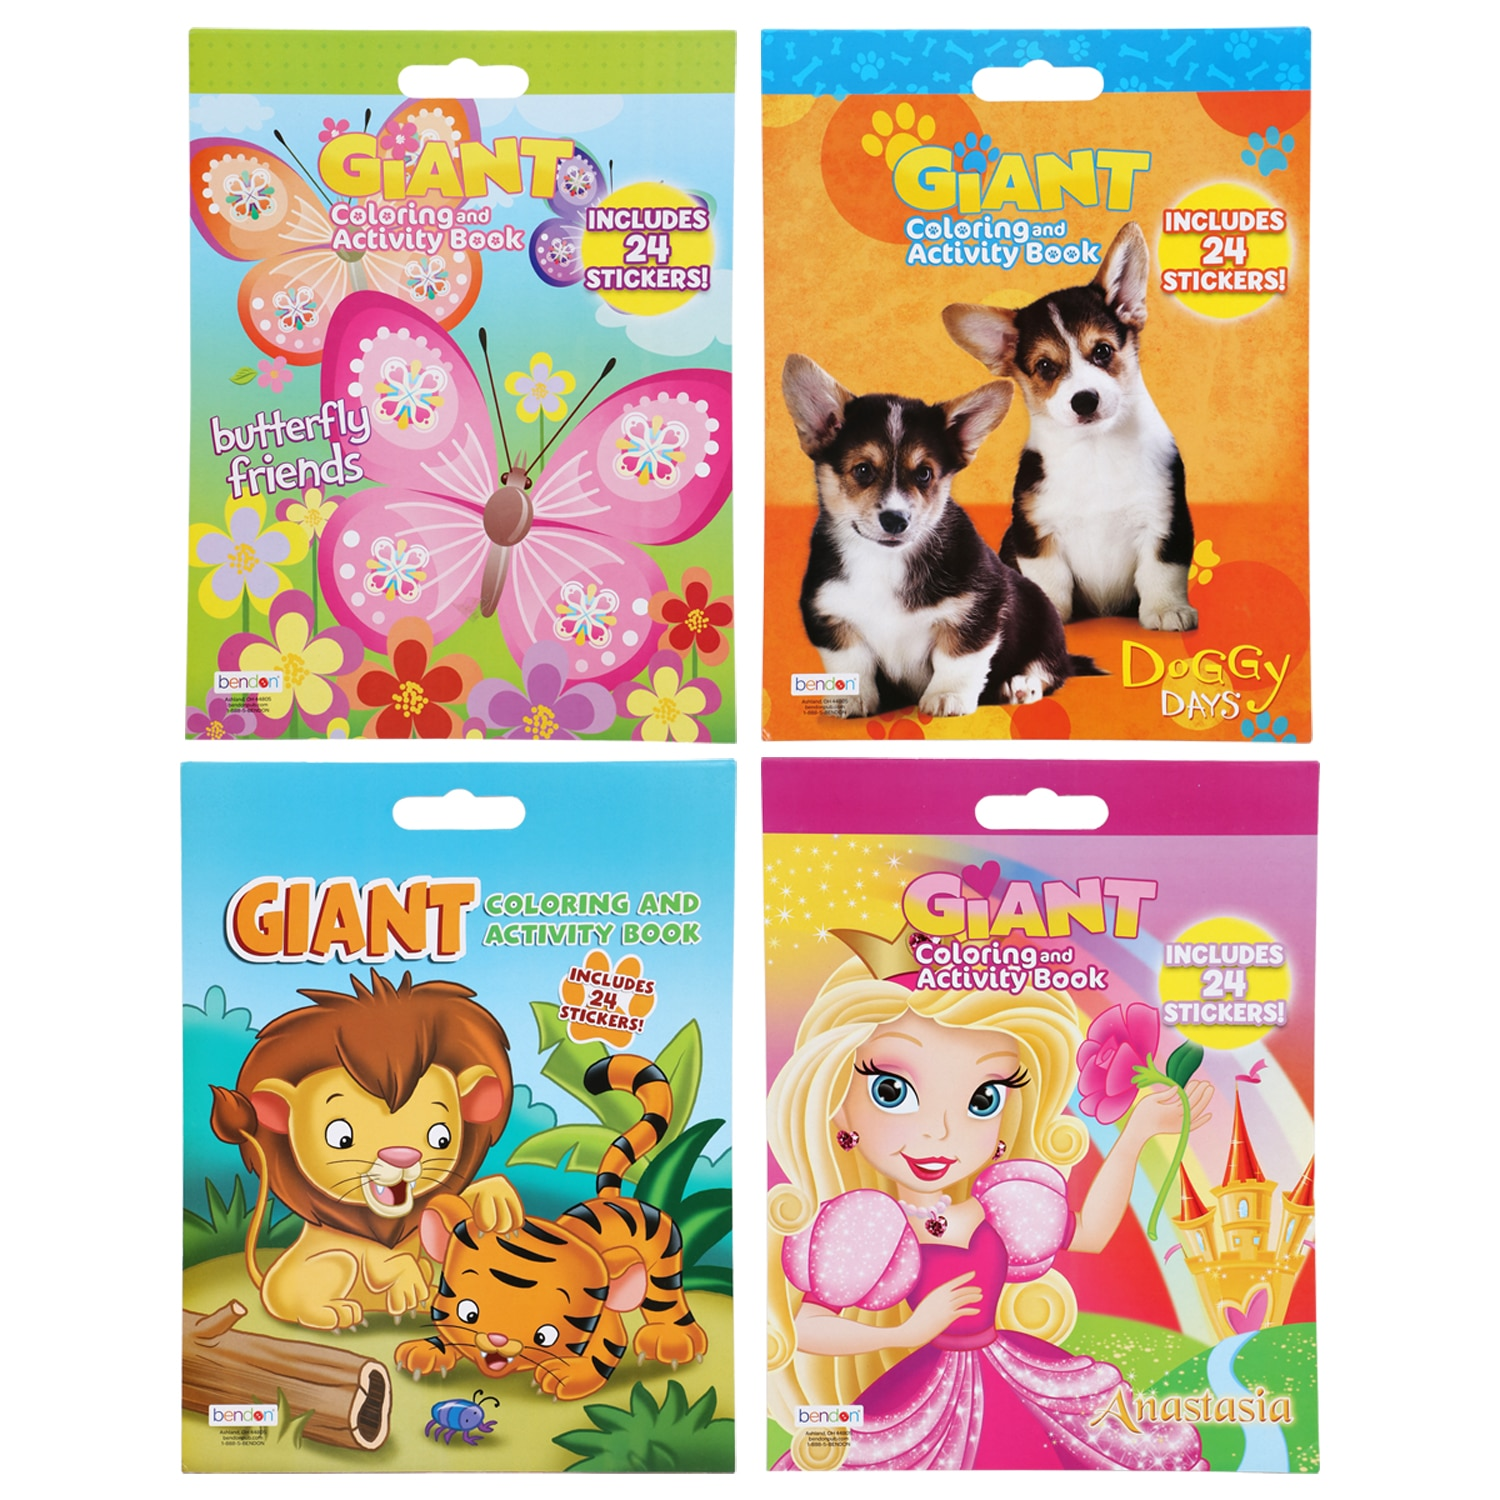 Giant Coloring Books Dollar Tree Inc